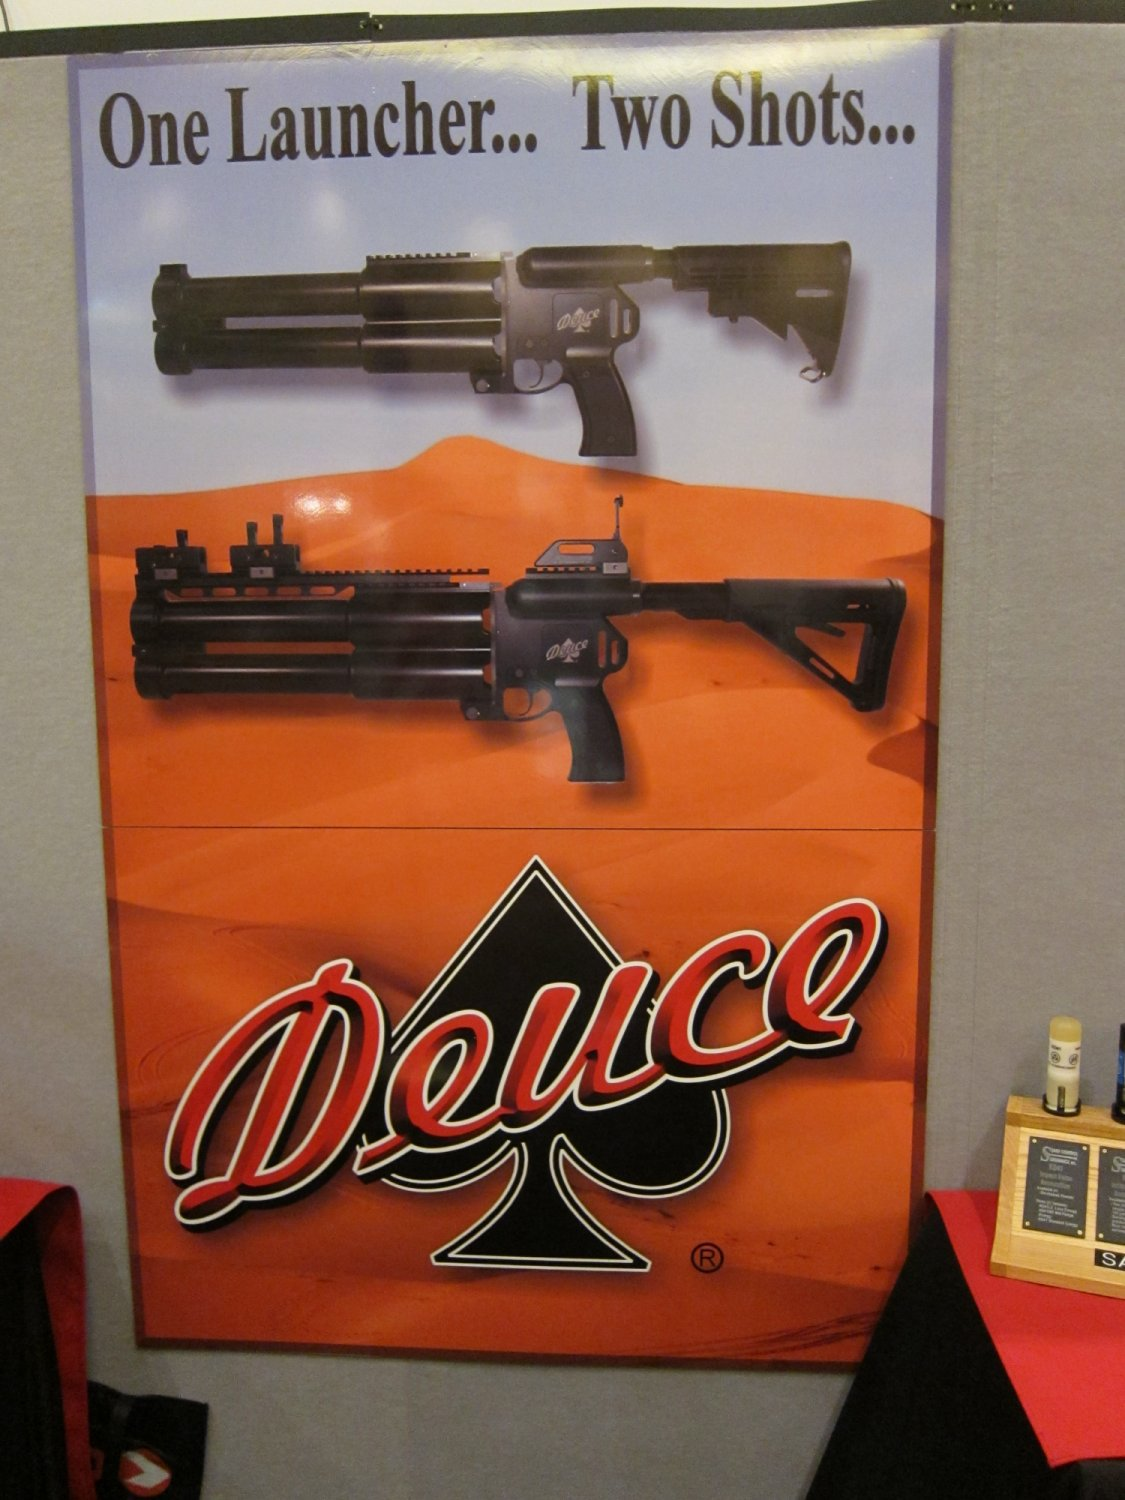 Sage Ordnance Systems Deuce Dual 40mm Grenade Launcher SHOT Show 2011 2 <!  :en  >Sage Ordnance Systems Deuce Over/Under Dual 40mm (40x46mm NATO)/37mm Sage Rifled/37mm Smooth Bore Grenade Launcher and Prototype Mag Fed Semi Auto 37mm Grenade Launcher <!  :  >